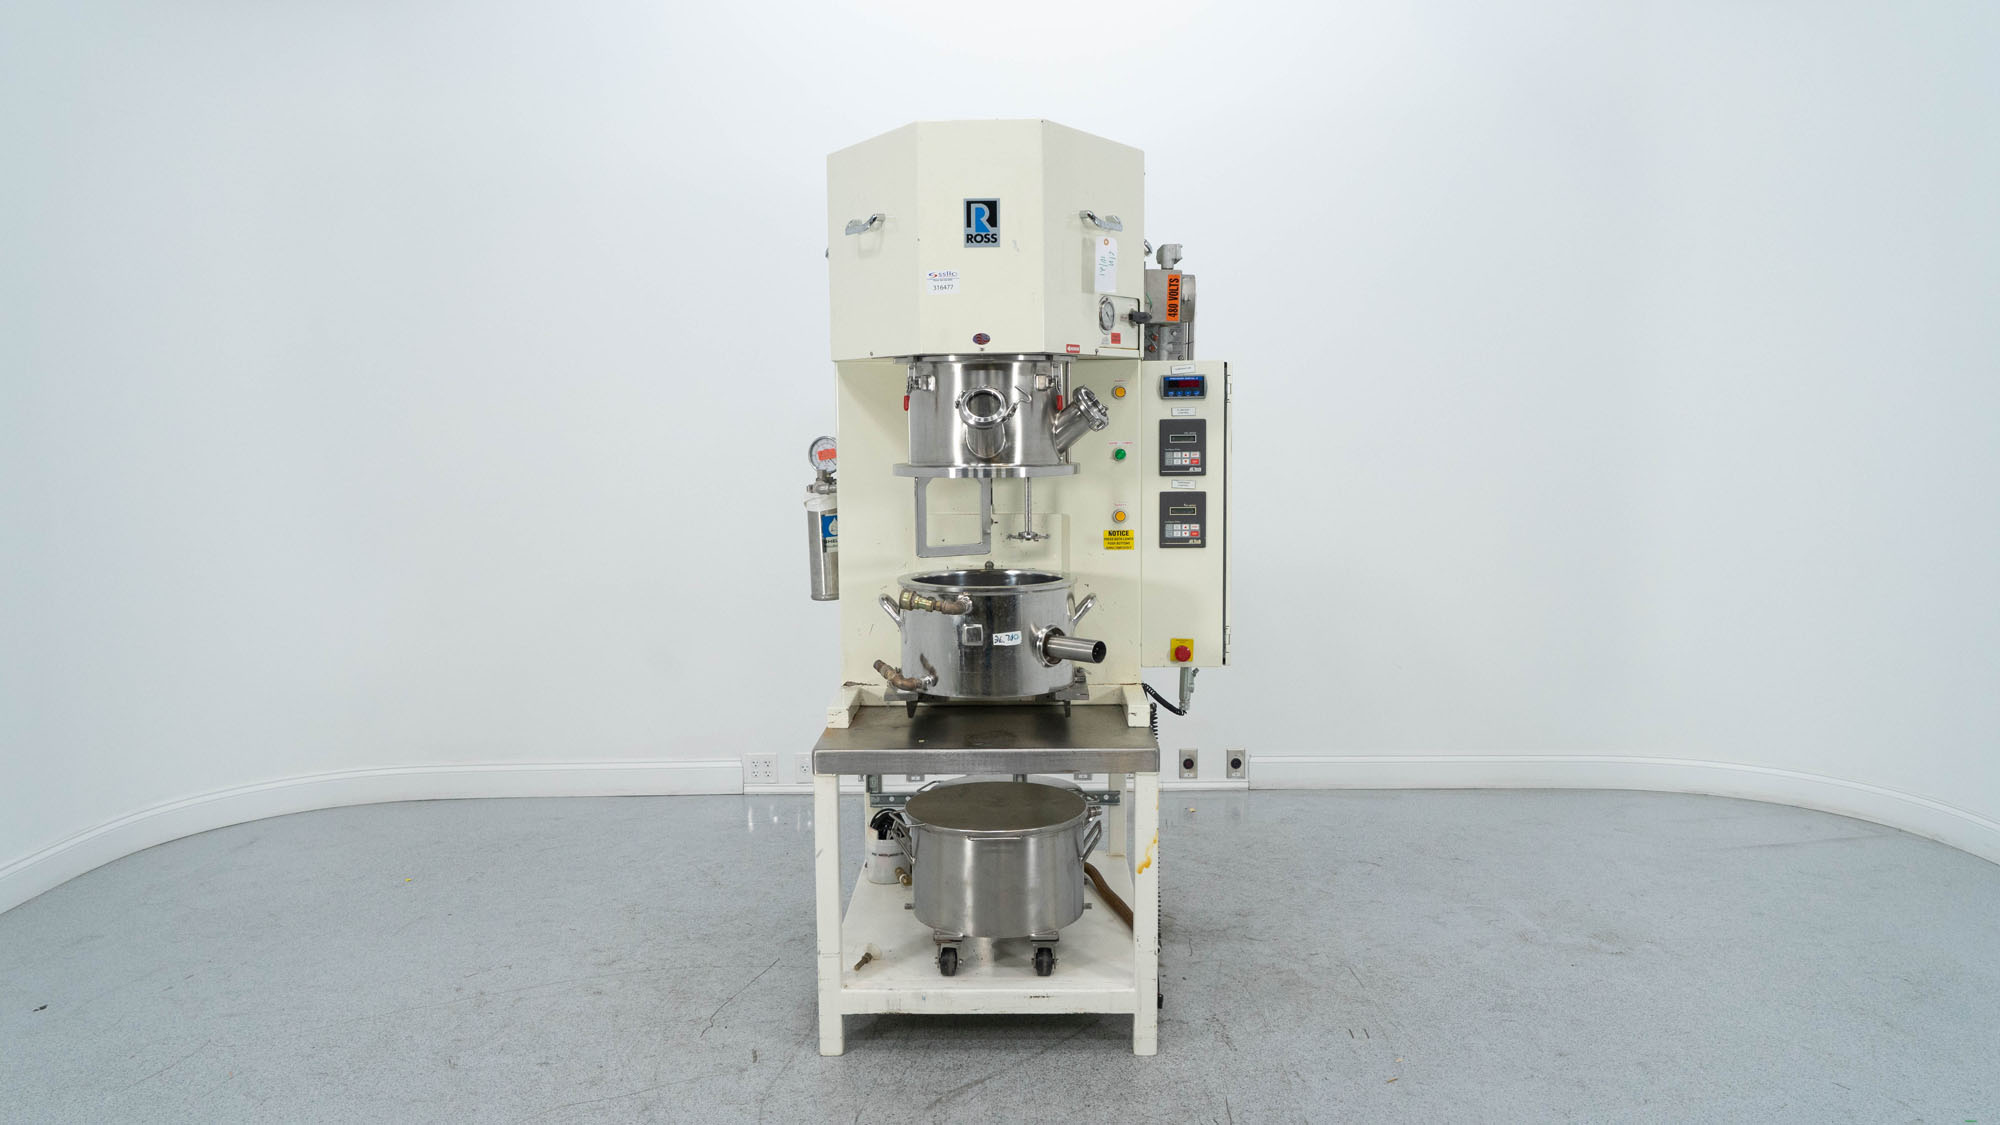 4 Gal Ross Planetary Mixer, Model PDM-4 With Press, S/S